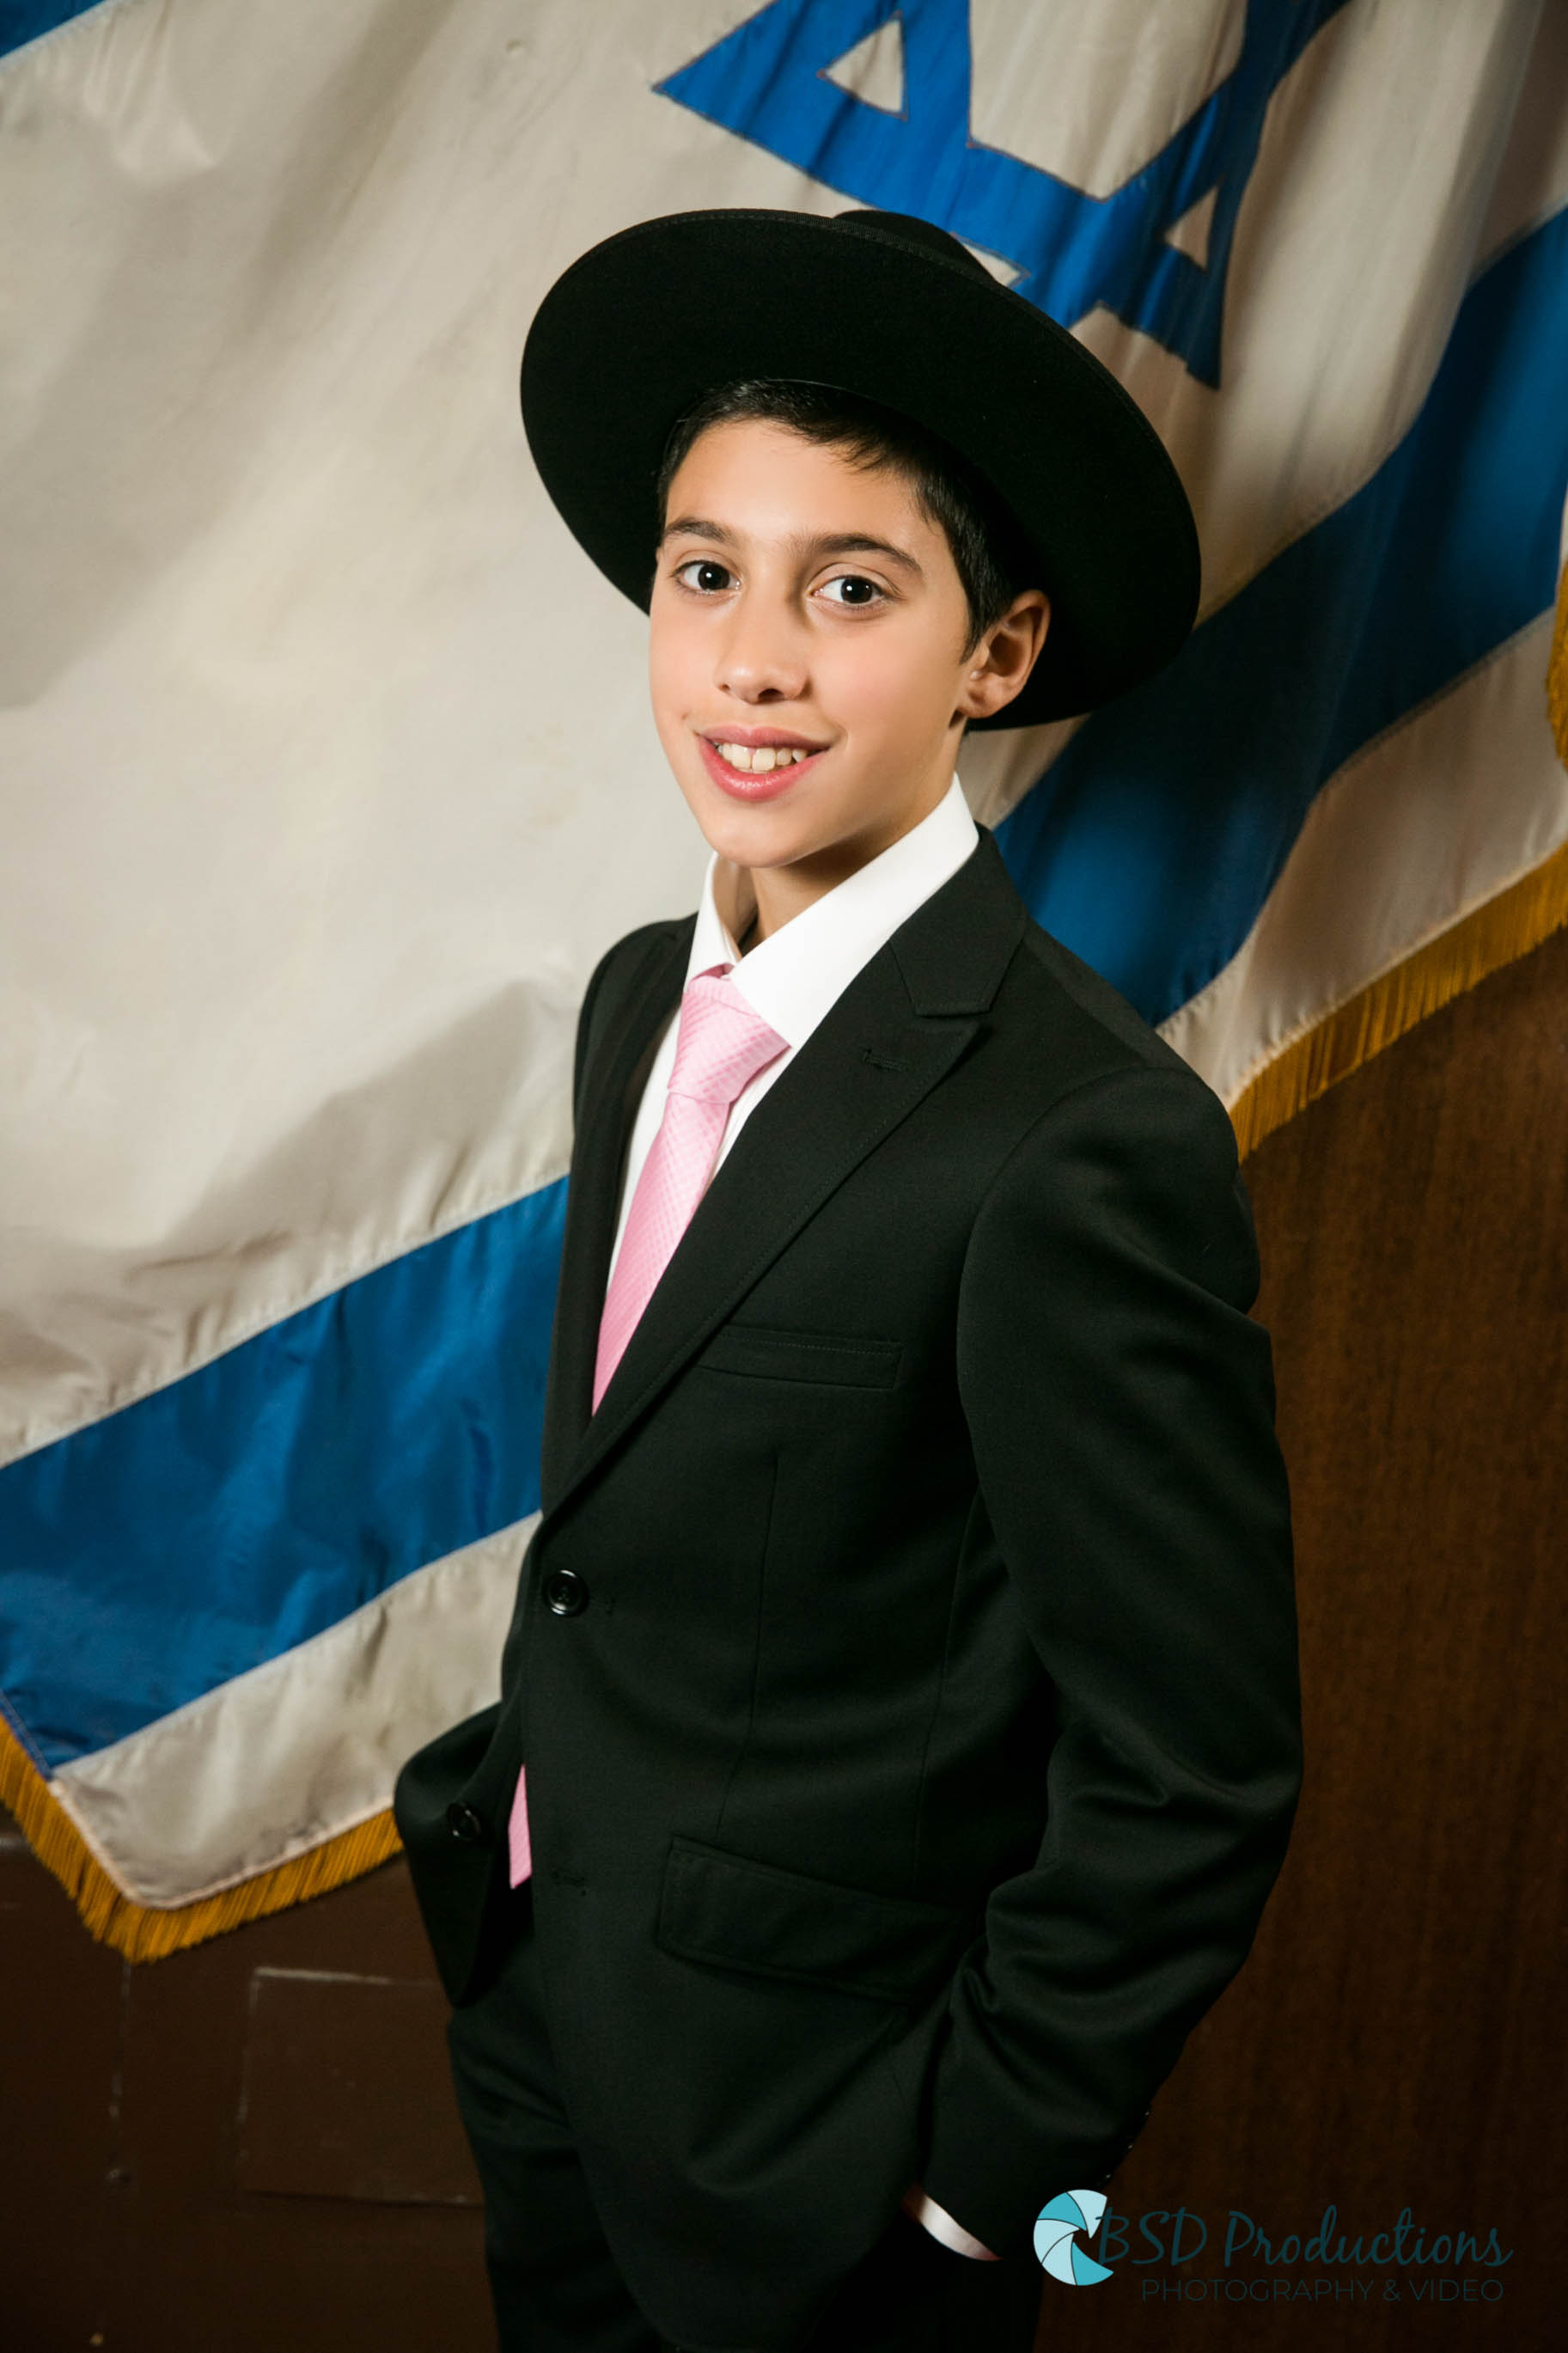 D_R_3521 Bar Mitzvah – BSD Productions Photography